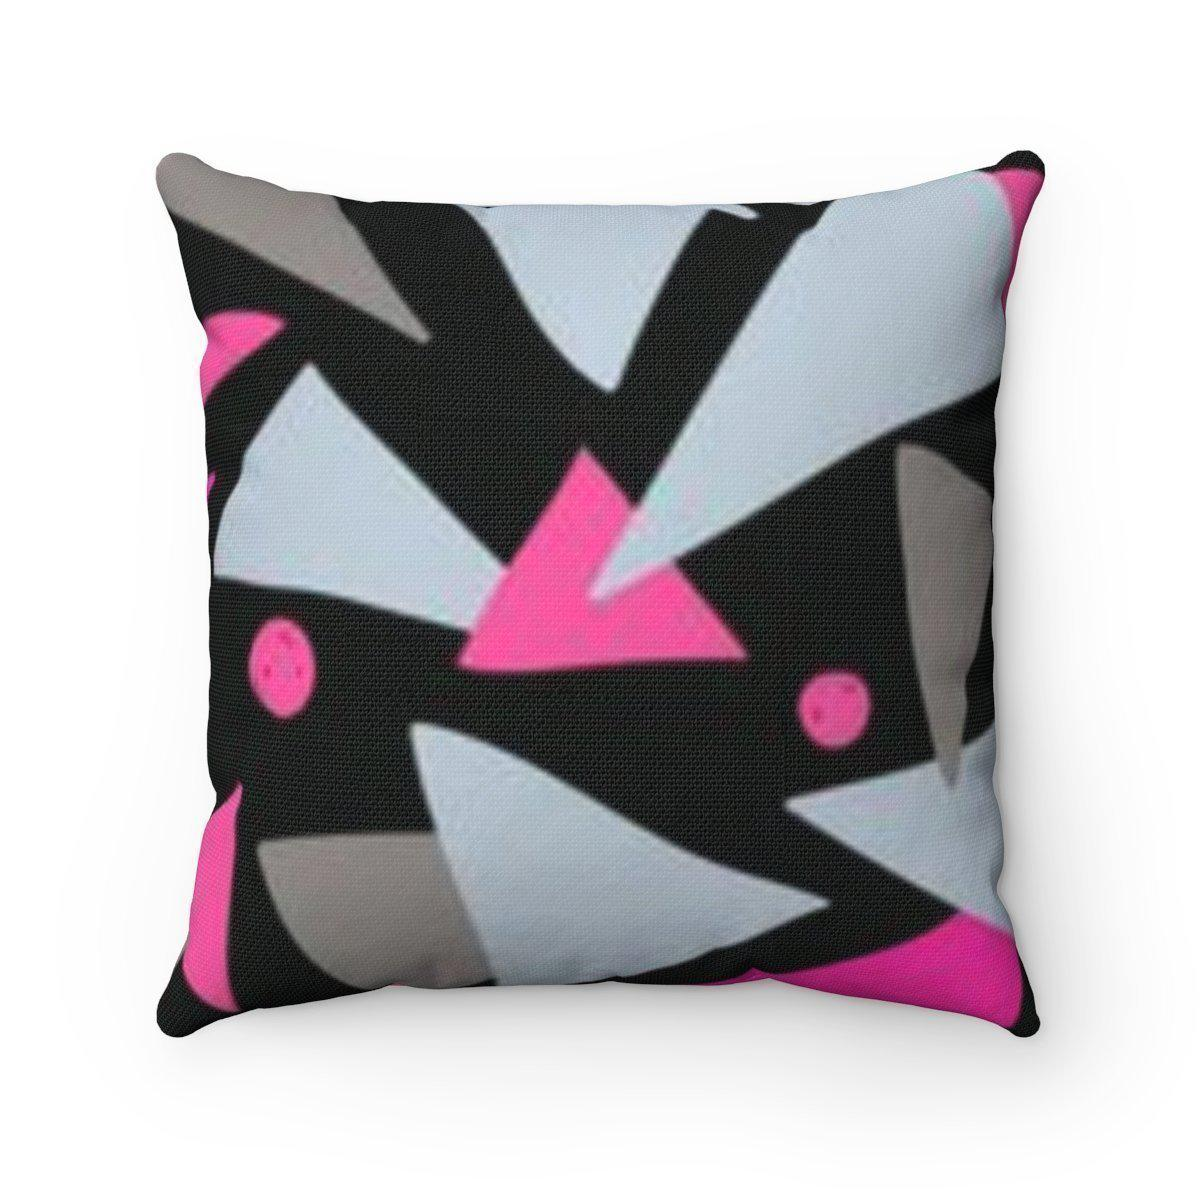 Maison d'Elite modern decorative cushion cover-Home Decor - Decorative Accents - Pillows & Throws - Decorative Pillows-Maison d'Elite-Très Elite